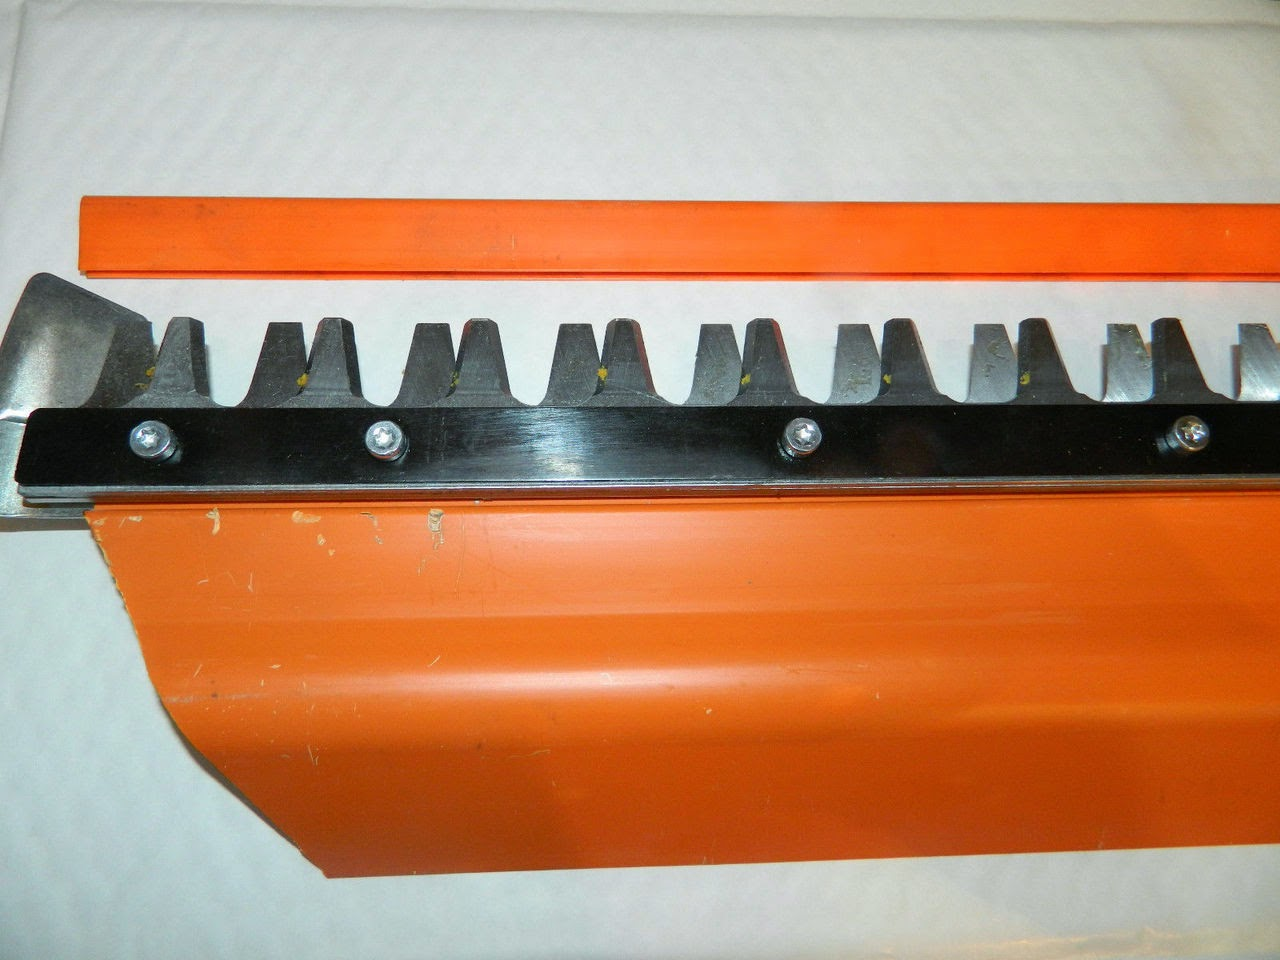 http://www.chainsawpartsonline.co.uk/stihl-hs86-hs86r-hedge-trimmer-cutter-bar-blade-single-side-with-reflector-30/